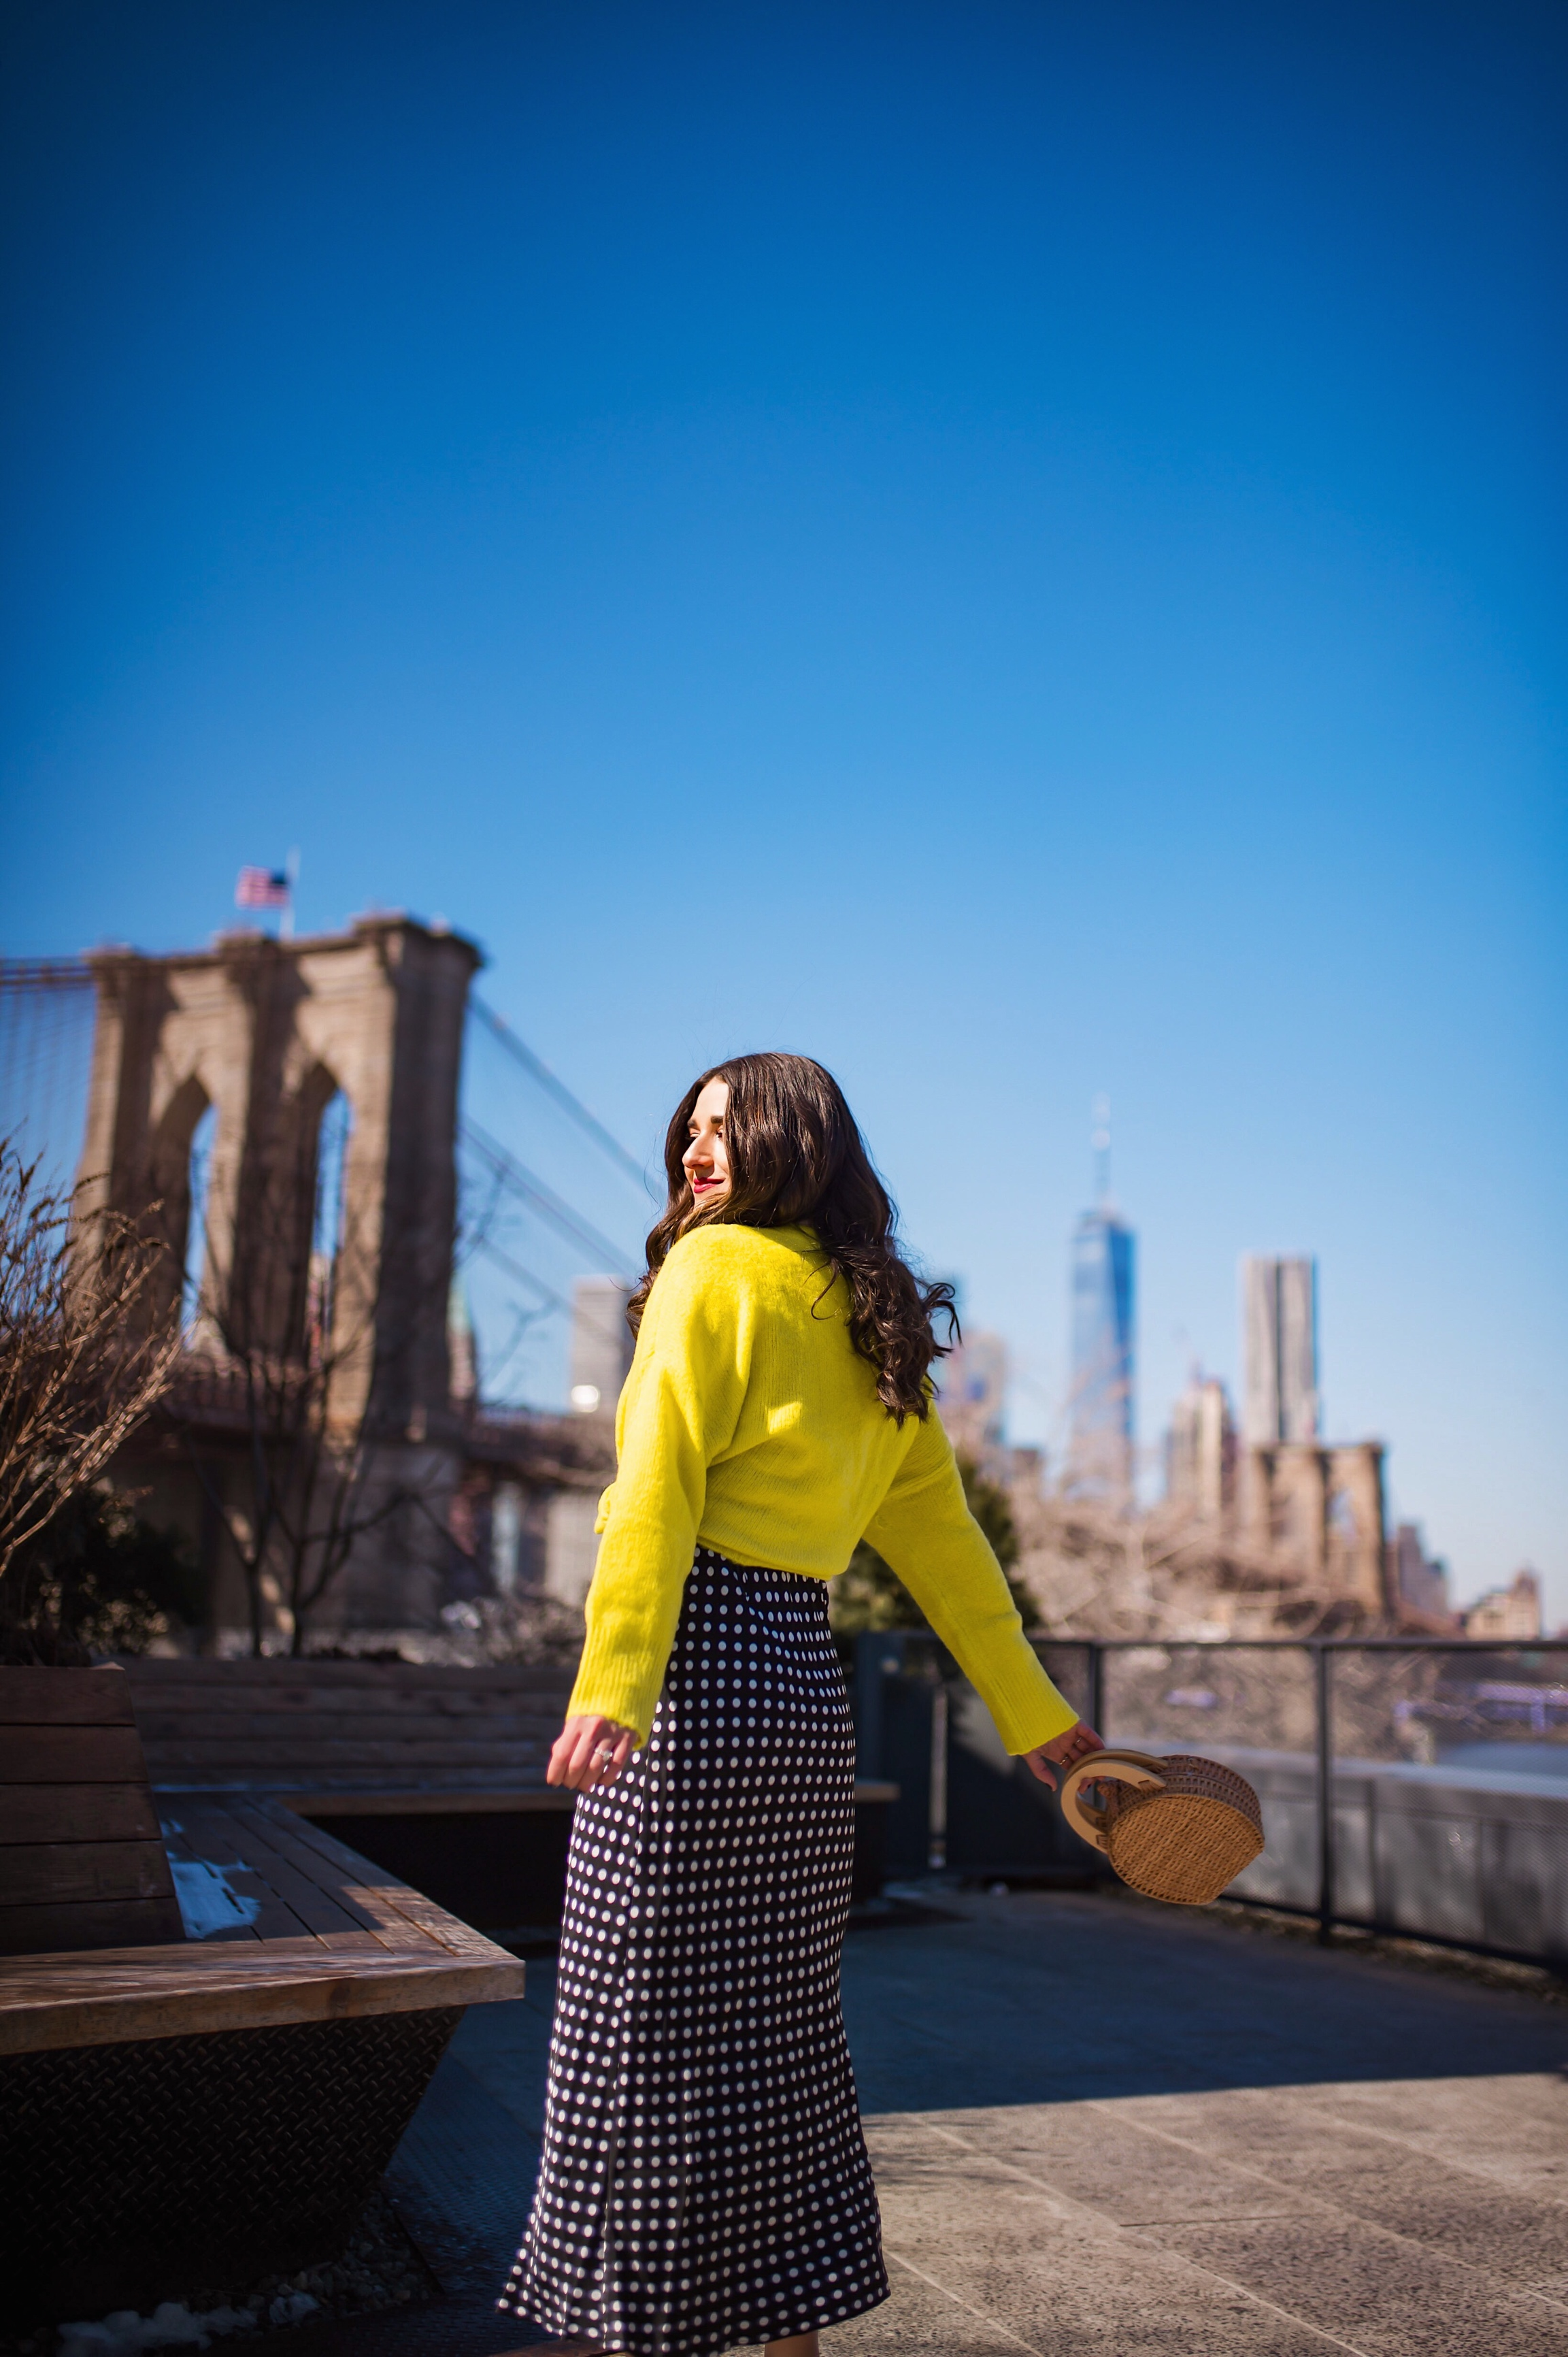 How I Wound Up With Boring White Dishes Navy Polka Dot Dress Neon Yellow Knotted Sweater Esther Santer Fashion Blog NYC Street Style Blogger Outfit OOTD Trendy Shopping Girl What How To Wear Dumbo Brooklyn Bridge Photoshoot Laurel Creative White Heels.JPG